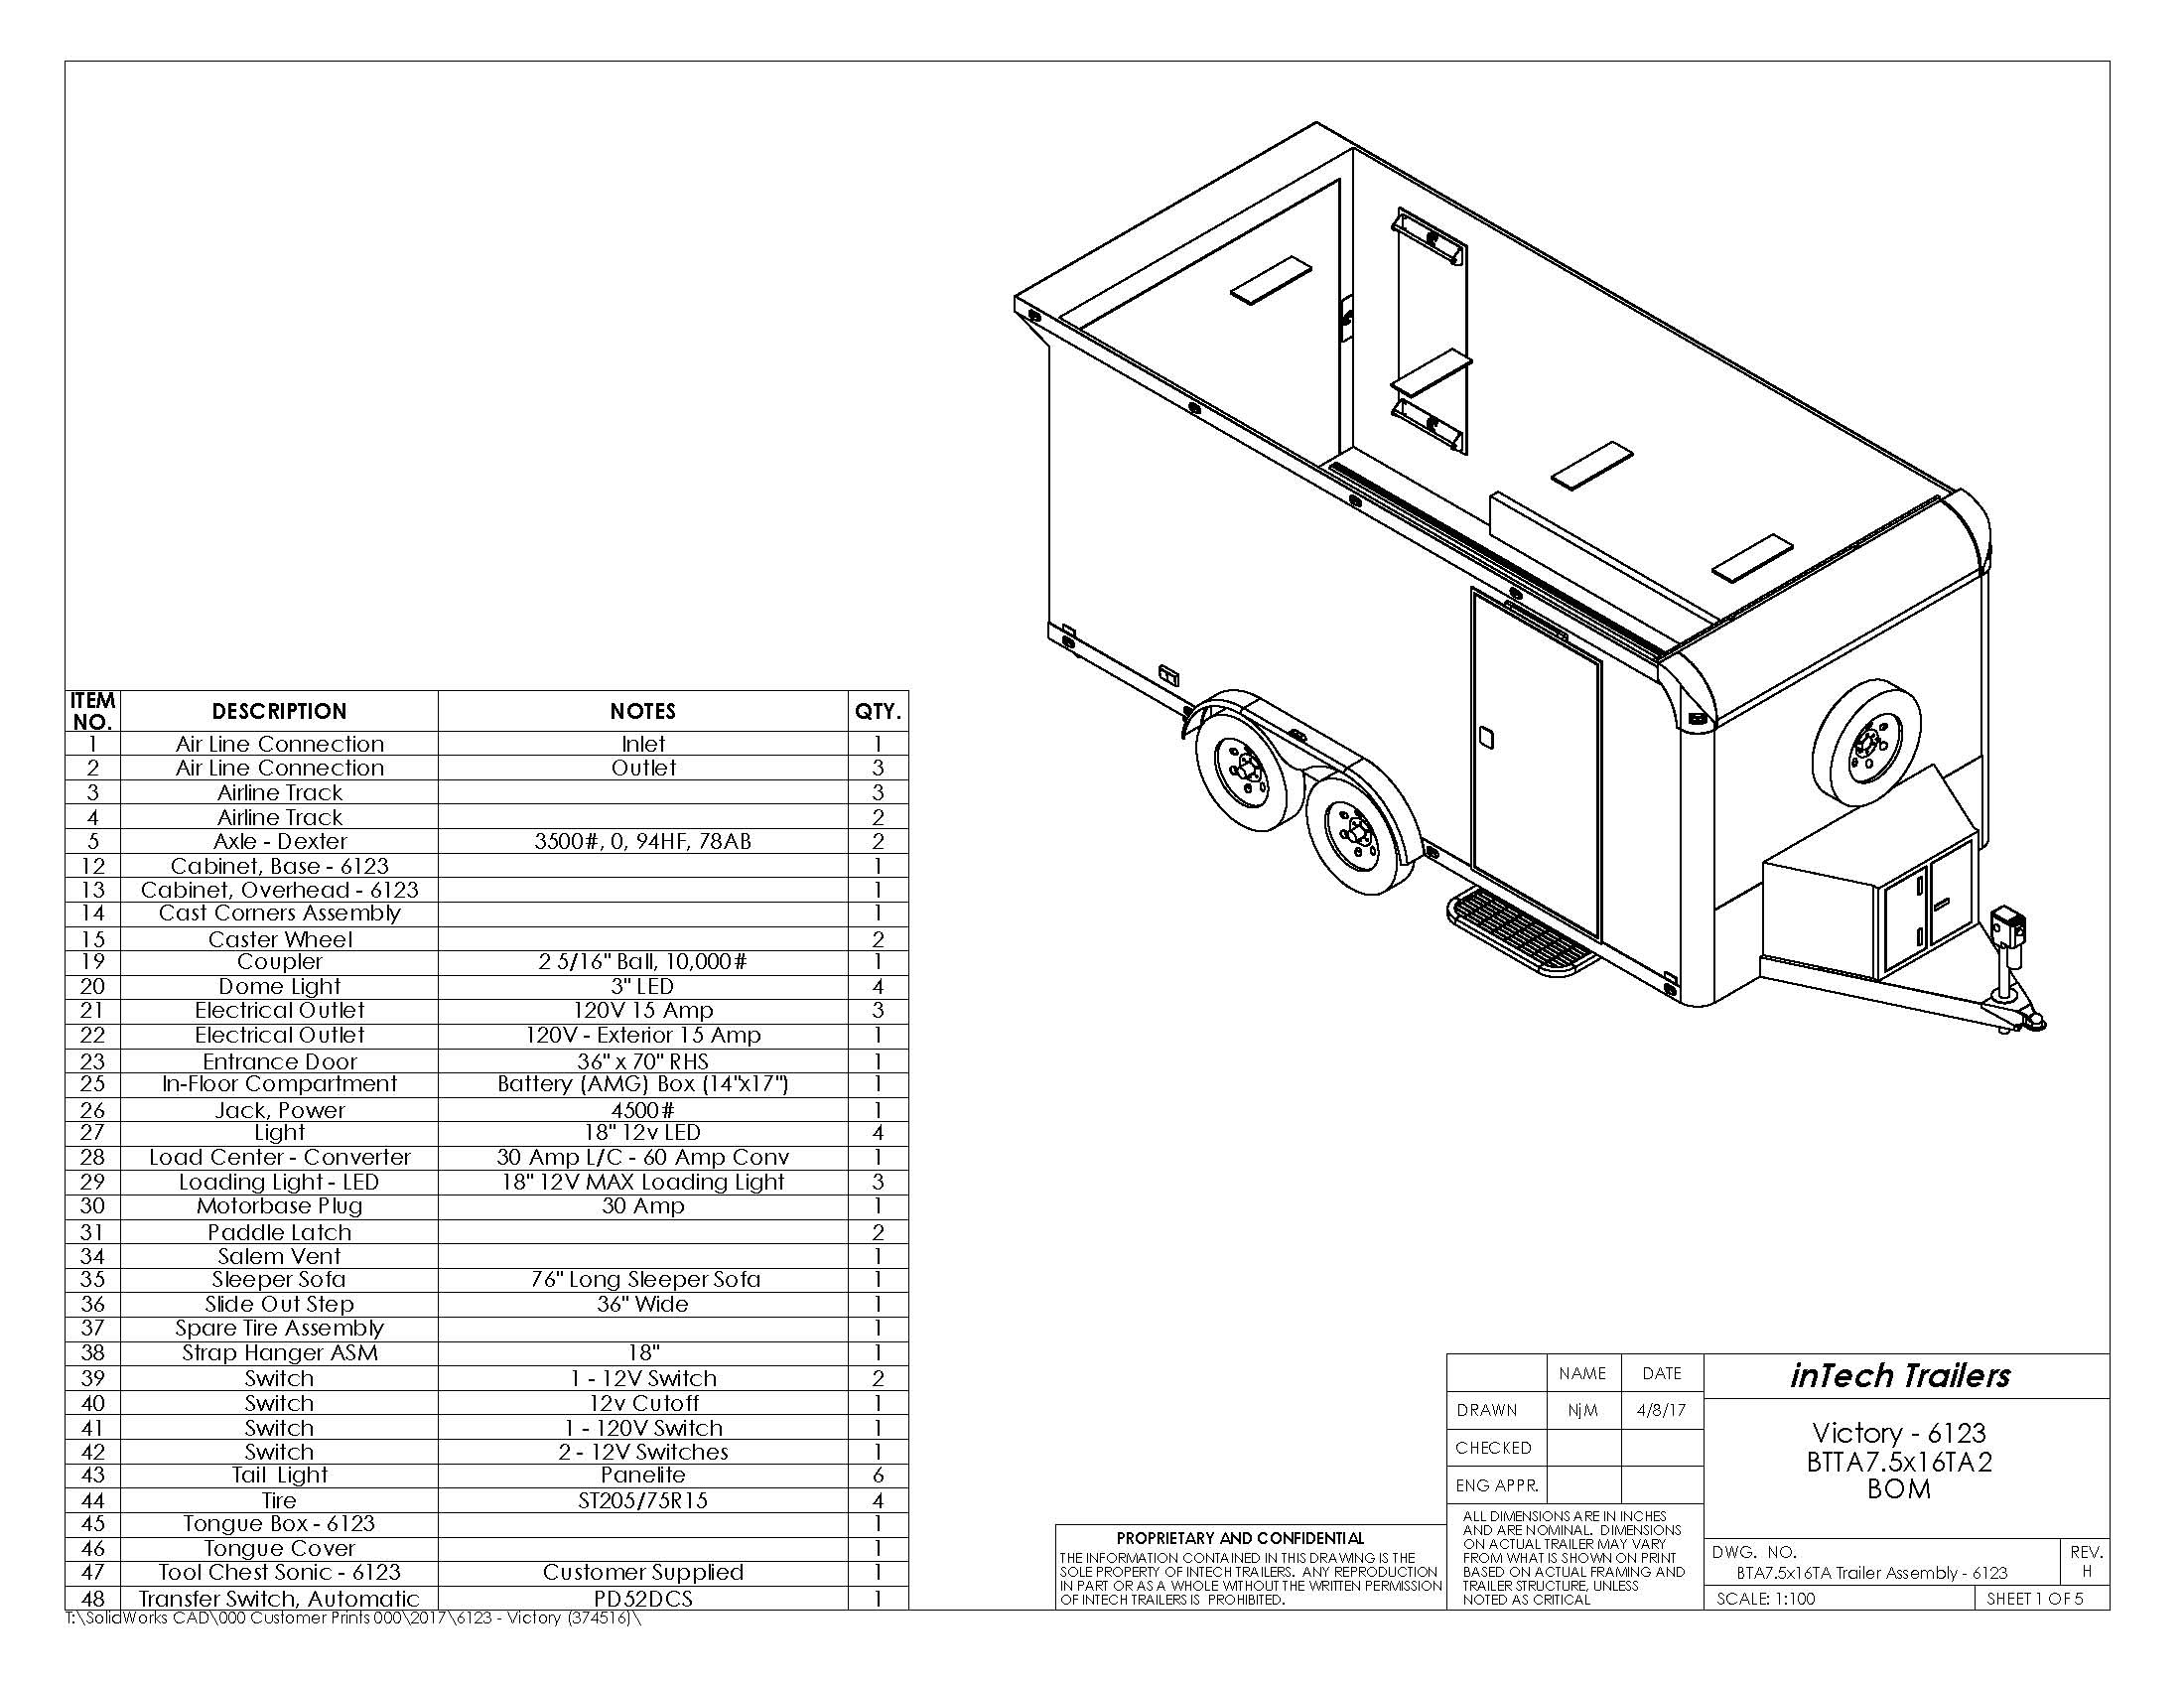 trailer drawing at getdrawings free for personal use trailer Dometic Thermostat Wiring Diagram 2200x1700 intech 7 5 x16 motorcycle trailer